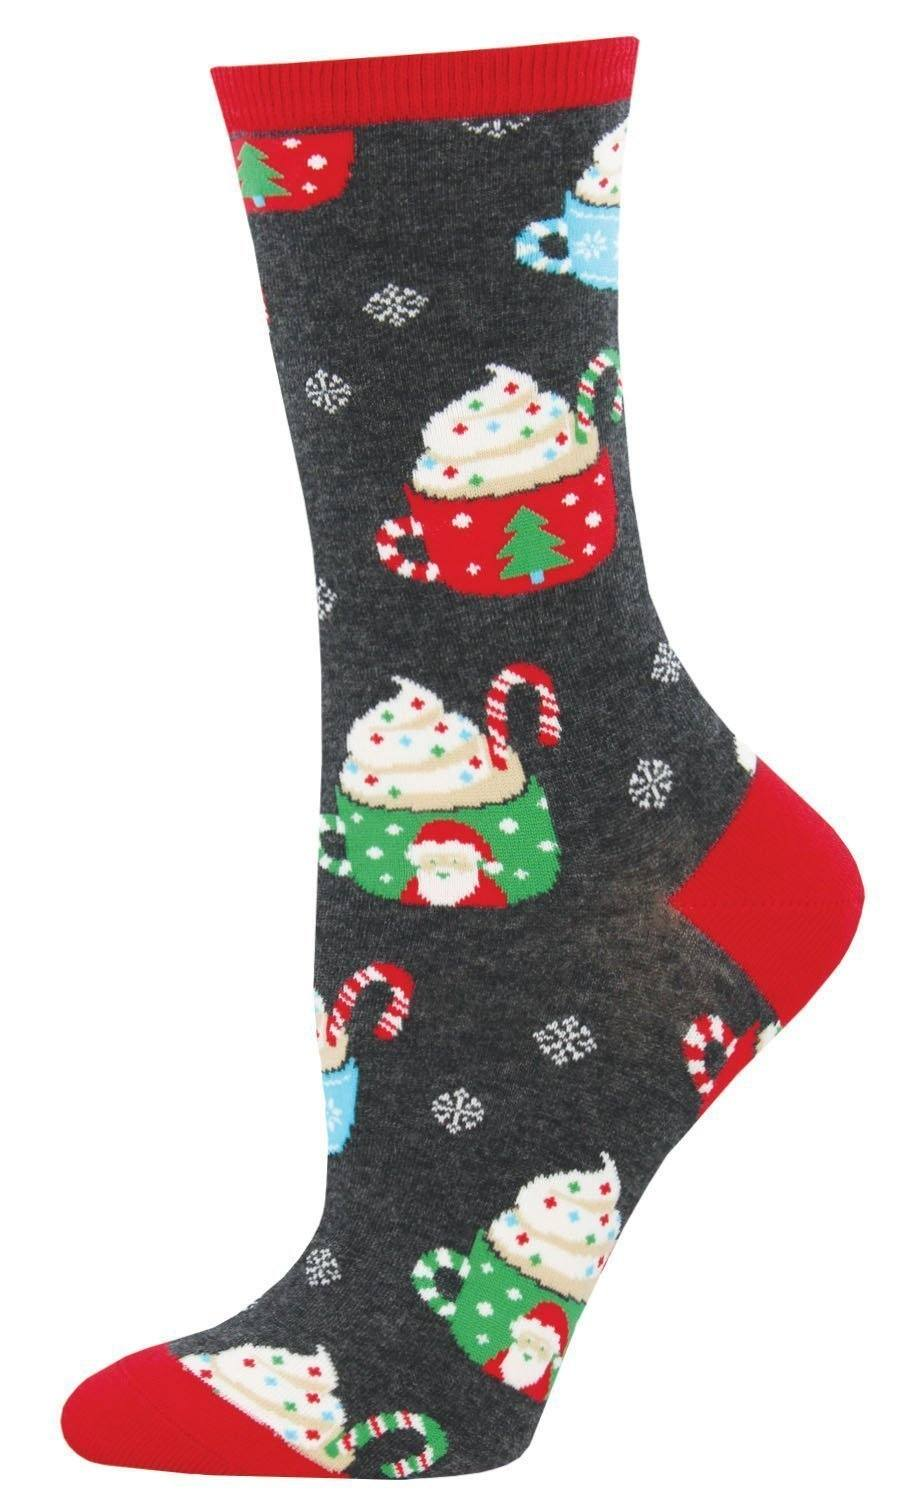 Socksmith - Cocoa Christmas Crew Socks | Women's - Knock Your Socks Off